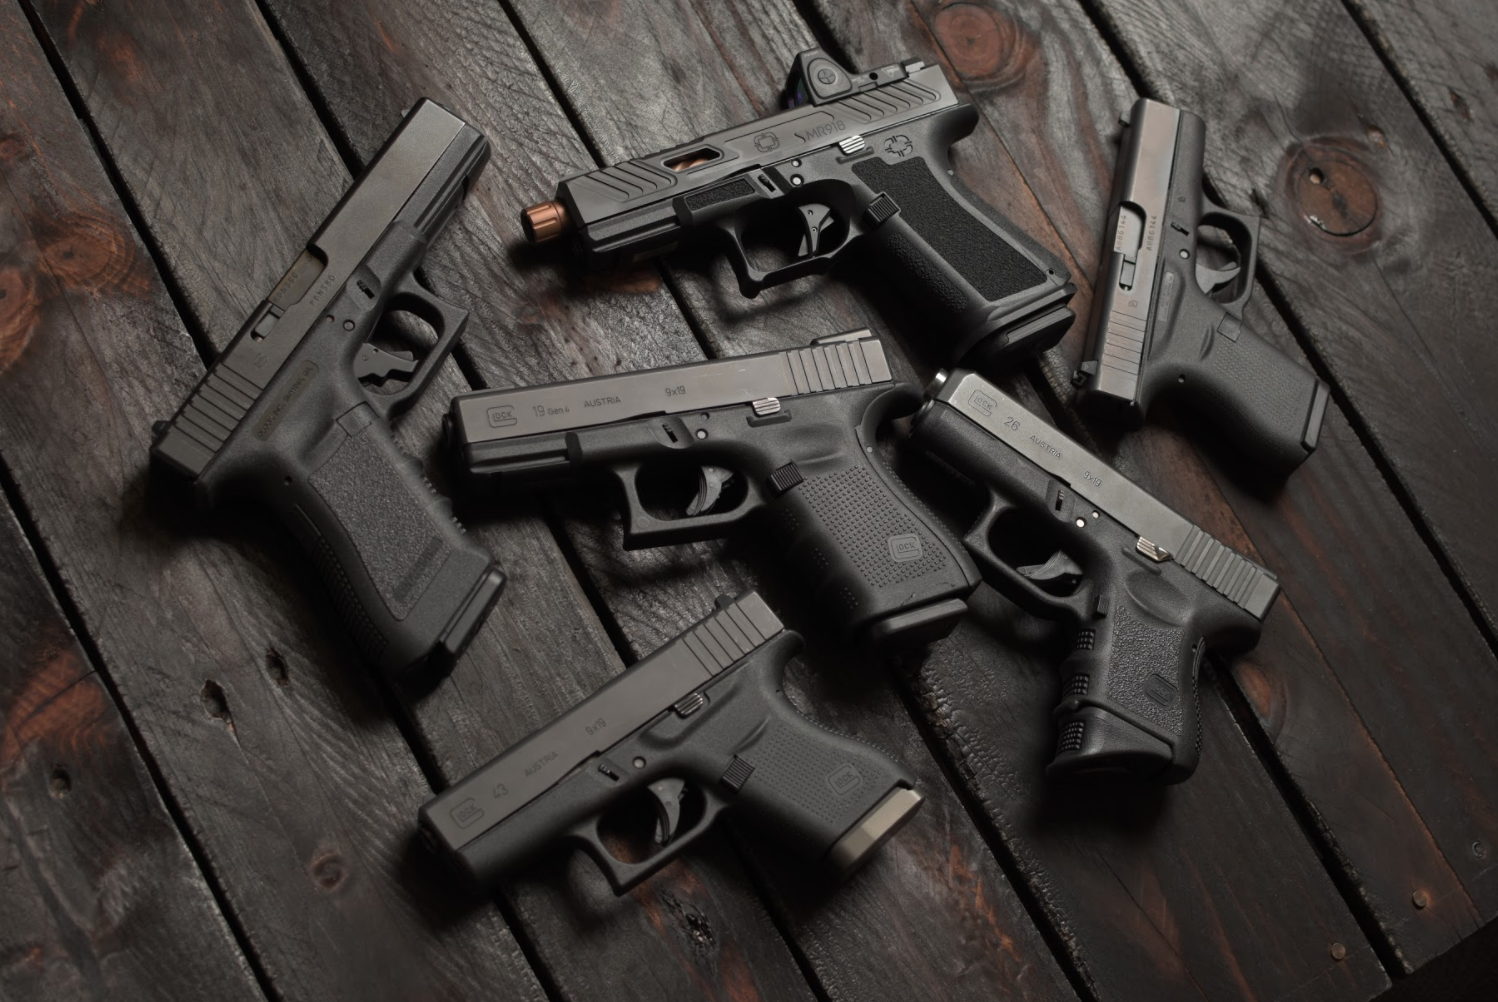 Glock, pistols, G19, G43, G17, G26, Glock firearms, CrossBreed Holsters, glock models, glock categories, CCW, concealed carry, IWB, OWB, best glock, glock for, G42